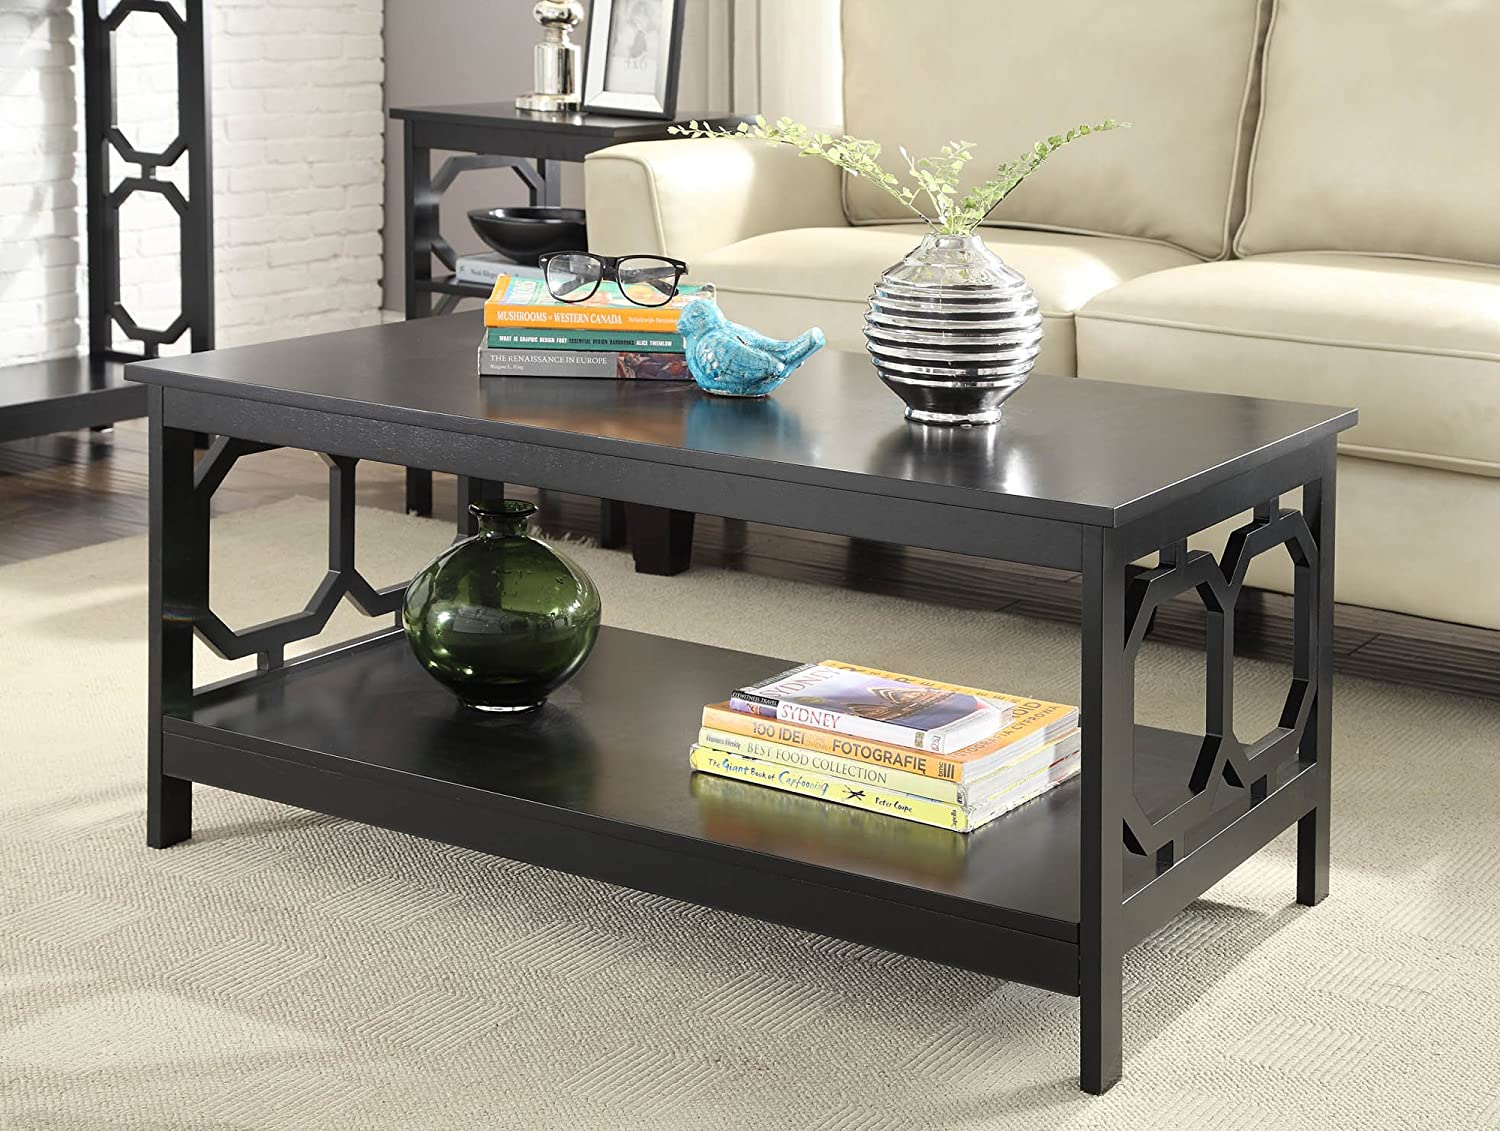 Merveilleux Amazon.com: Convenience Concepts Omega Coffee Table, Black: Kitchen U0026 Dining